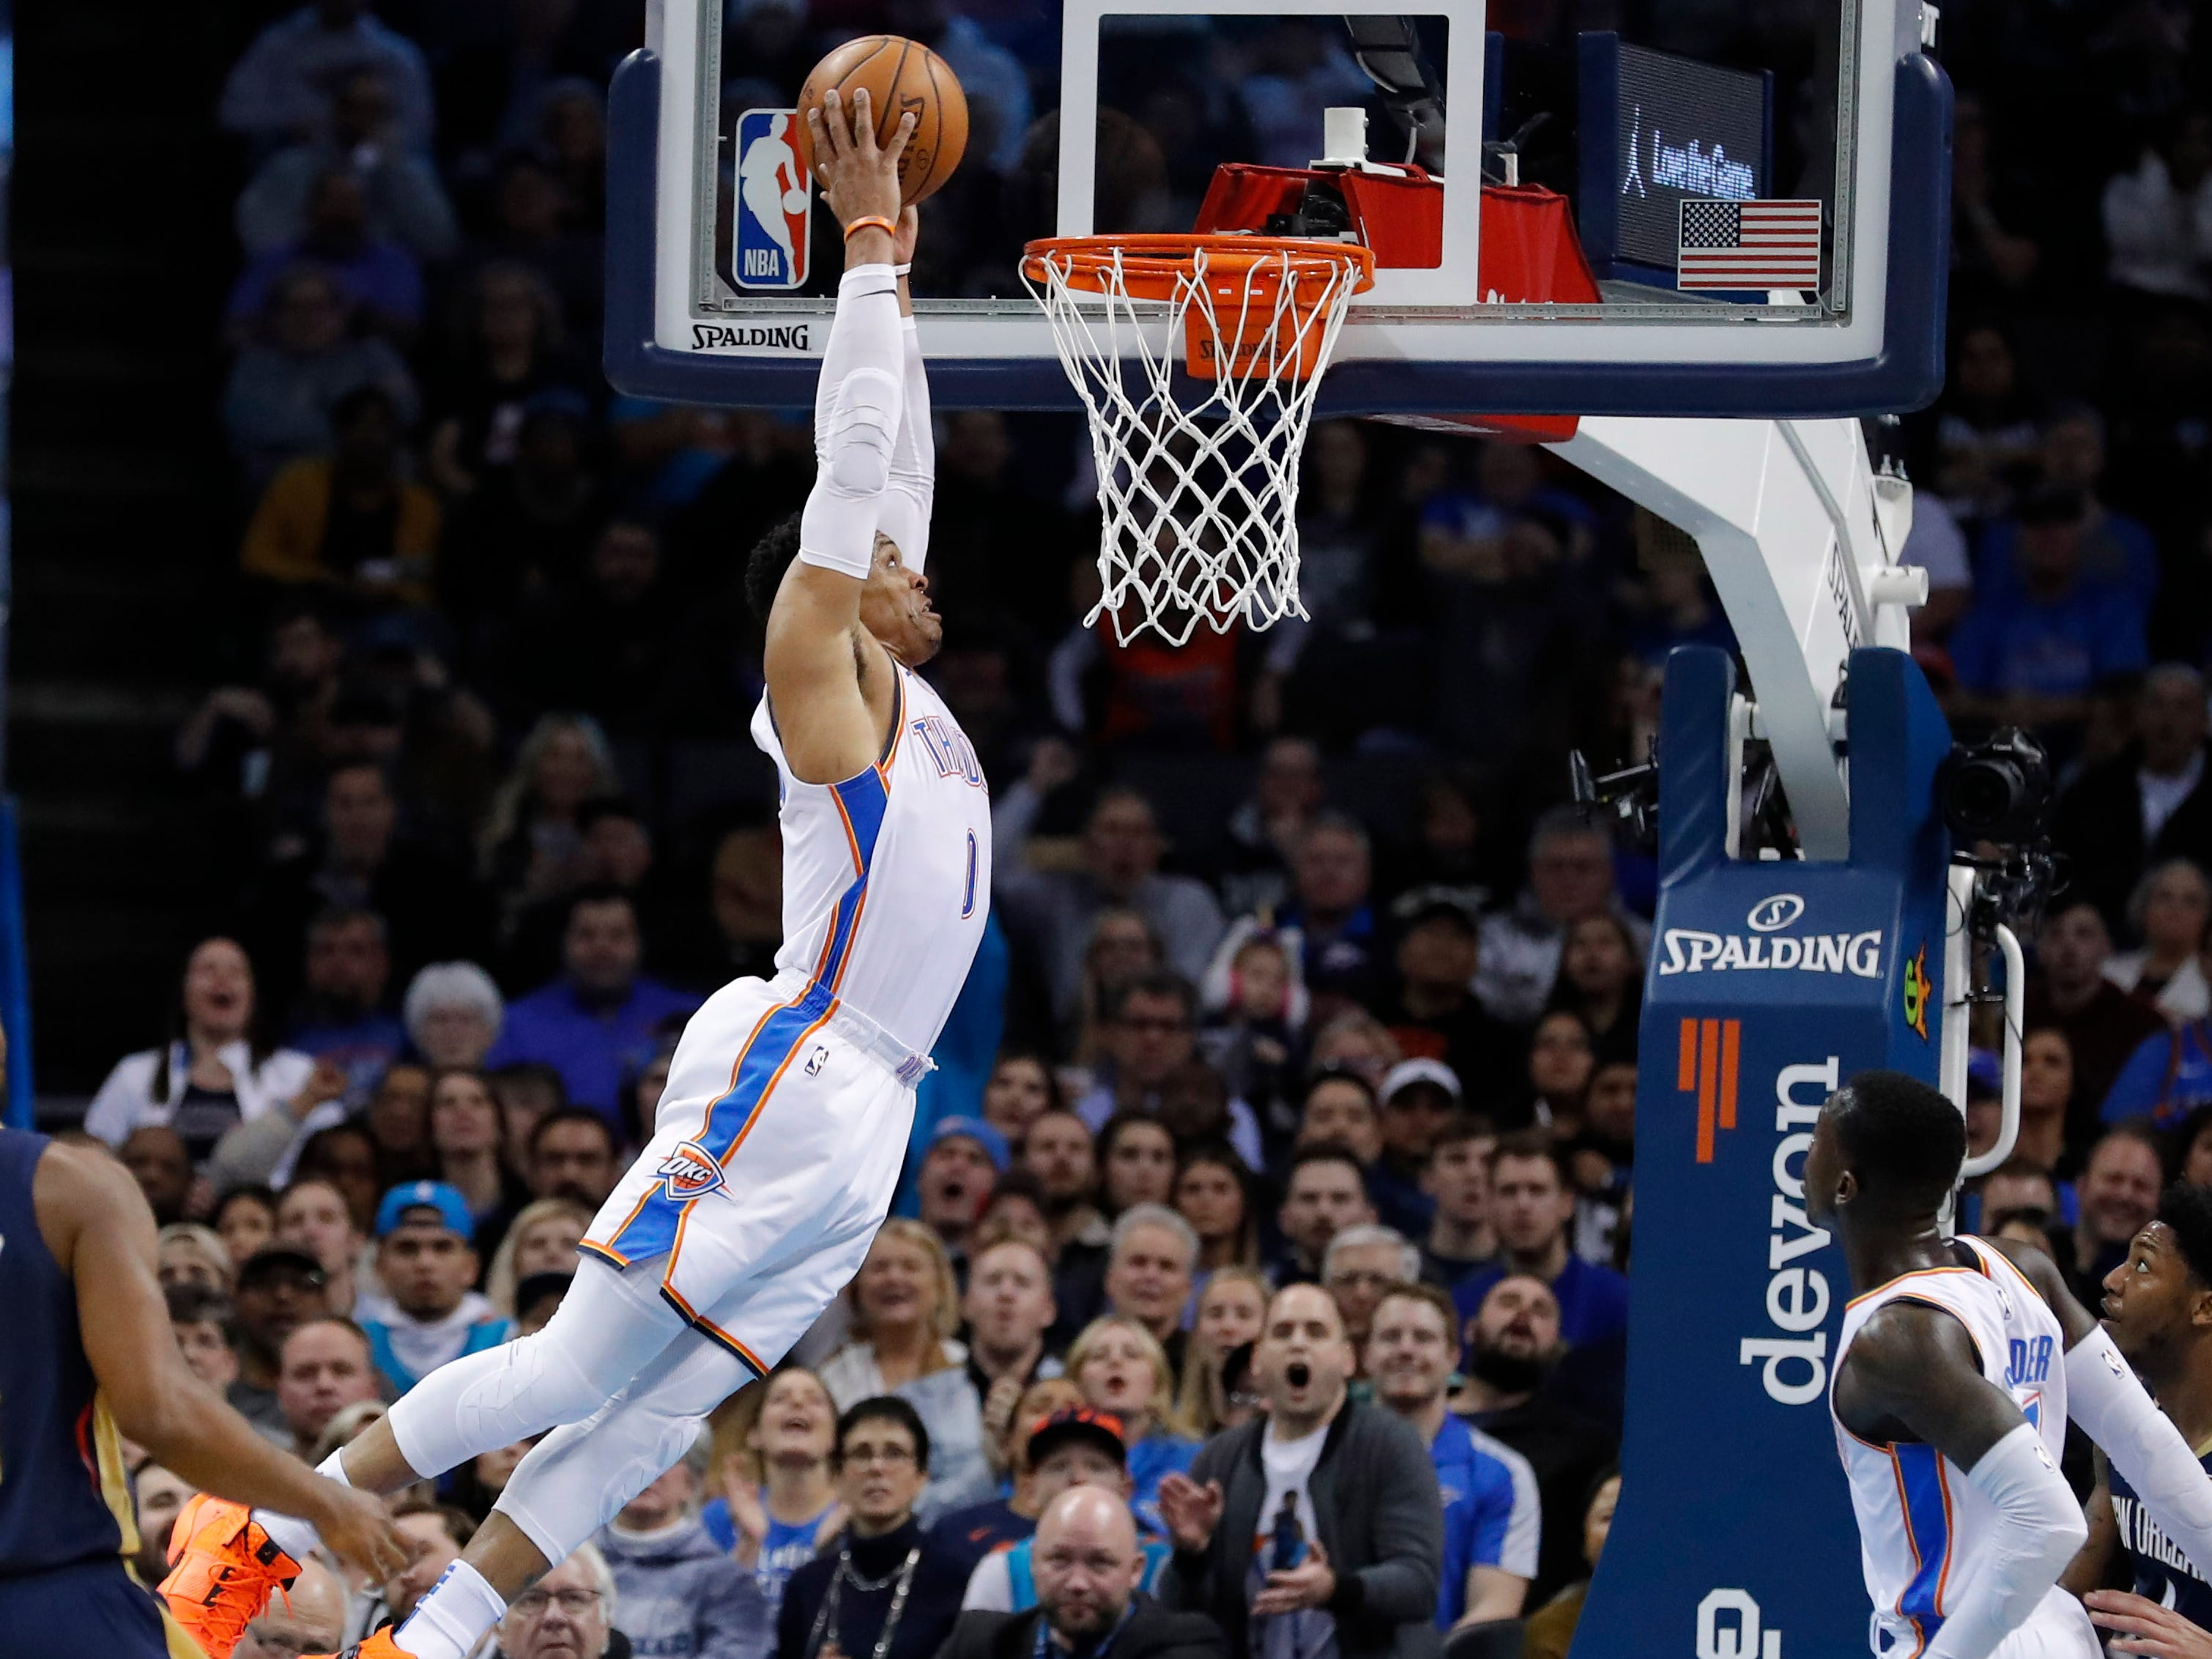 Jan. 24: Thunder guard Russell Westbrook soars to the bucket for the monster two-handed finish during the first half against the Pelicans in Oklahoma City.